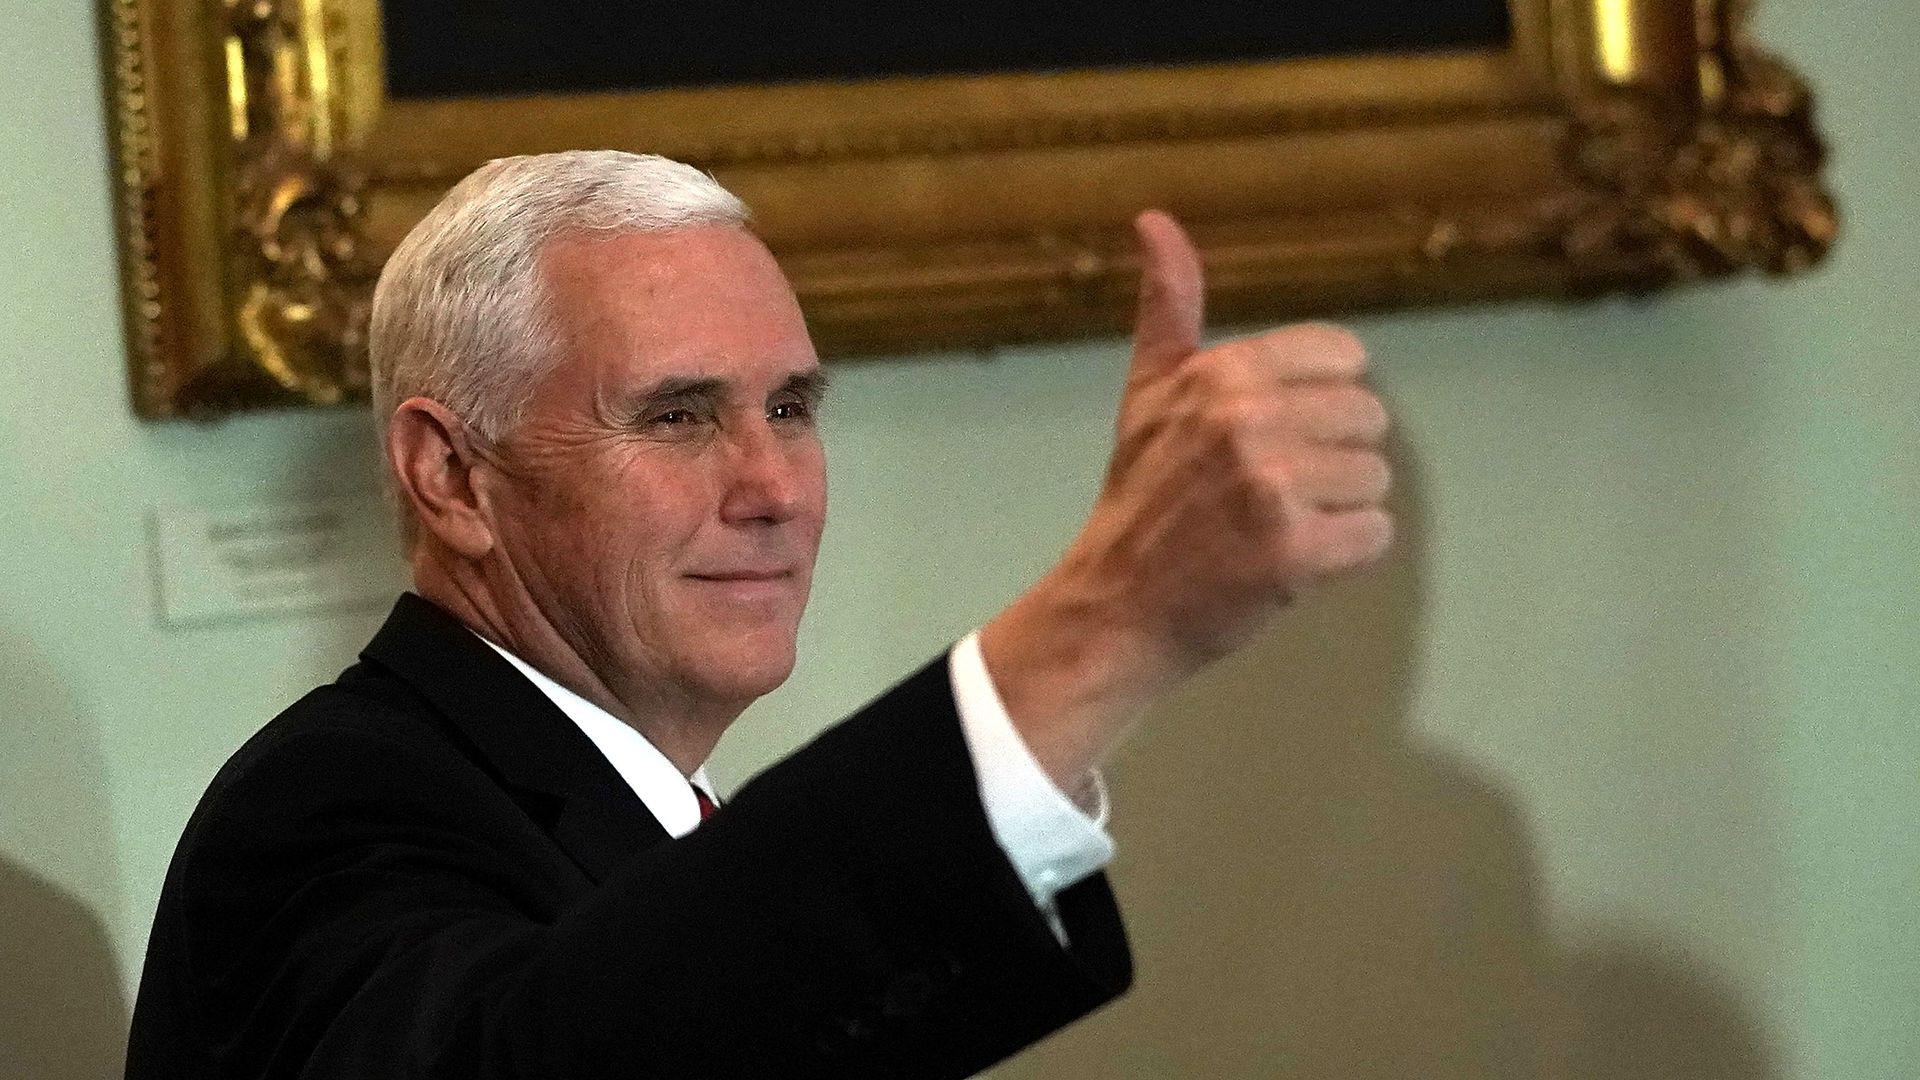 Pence giving a thumbs up